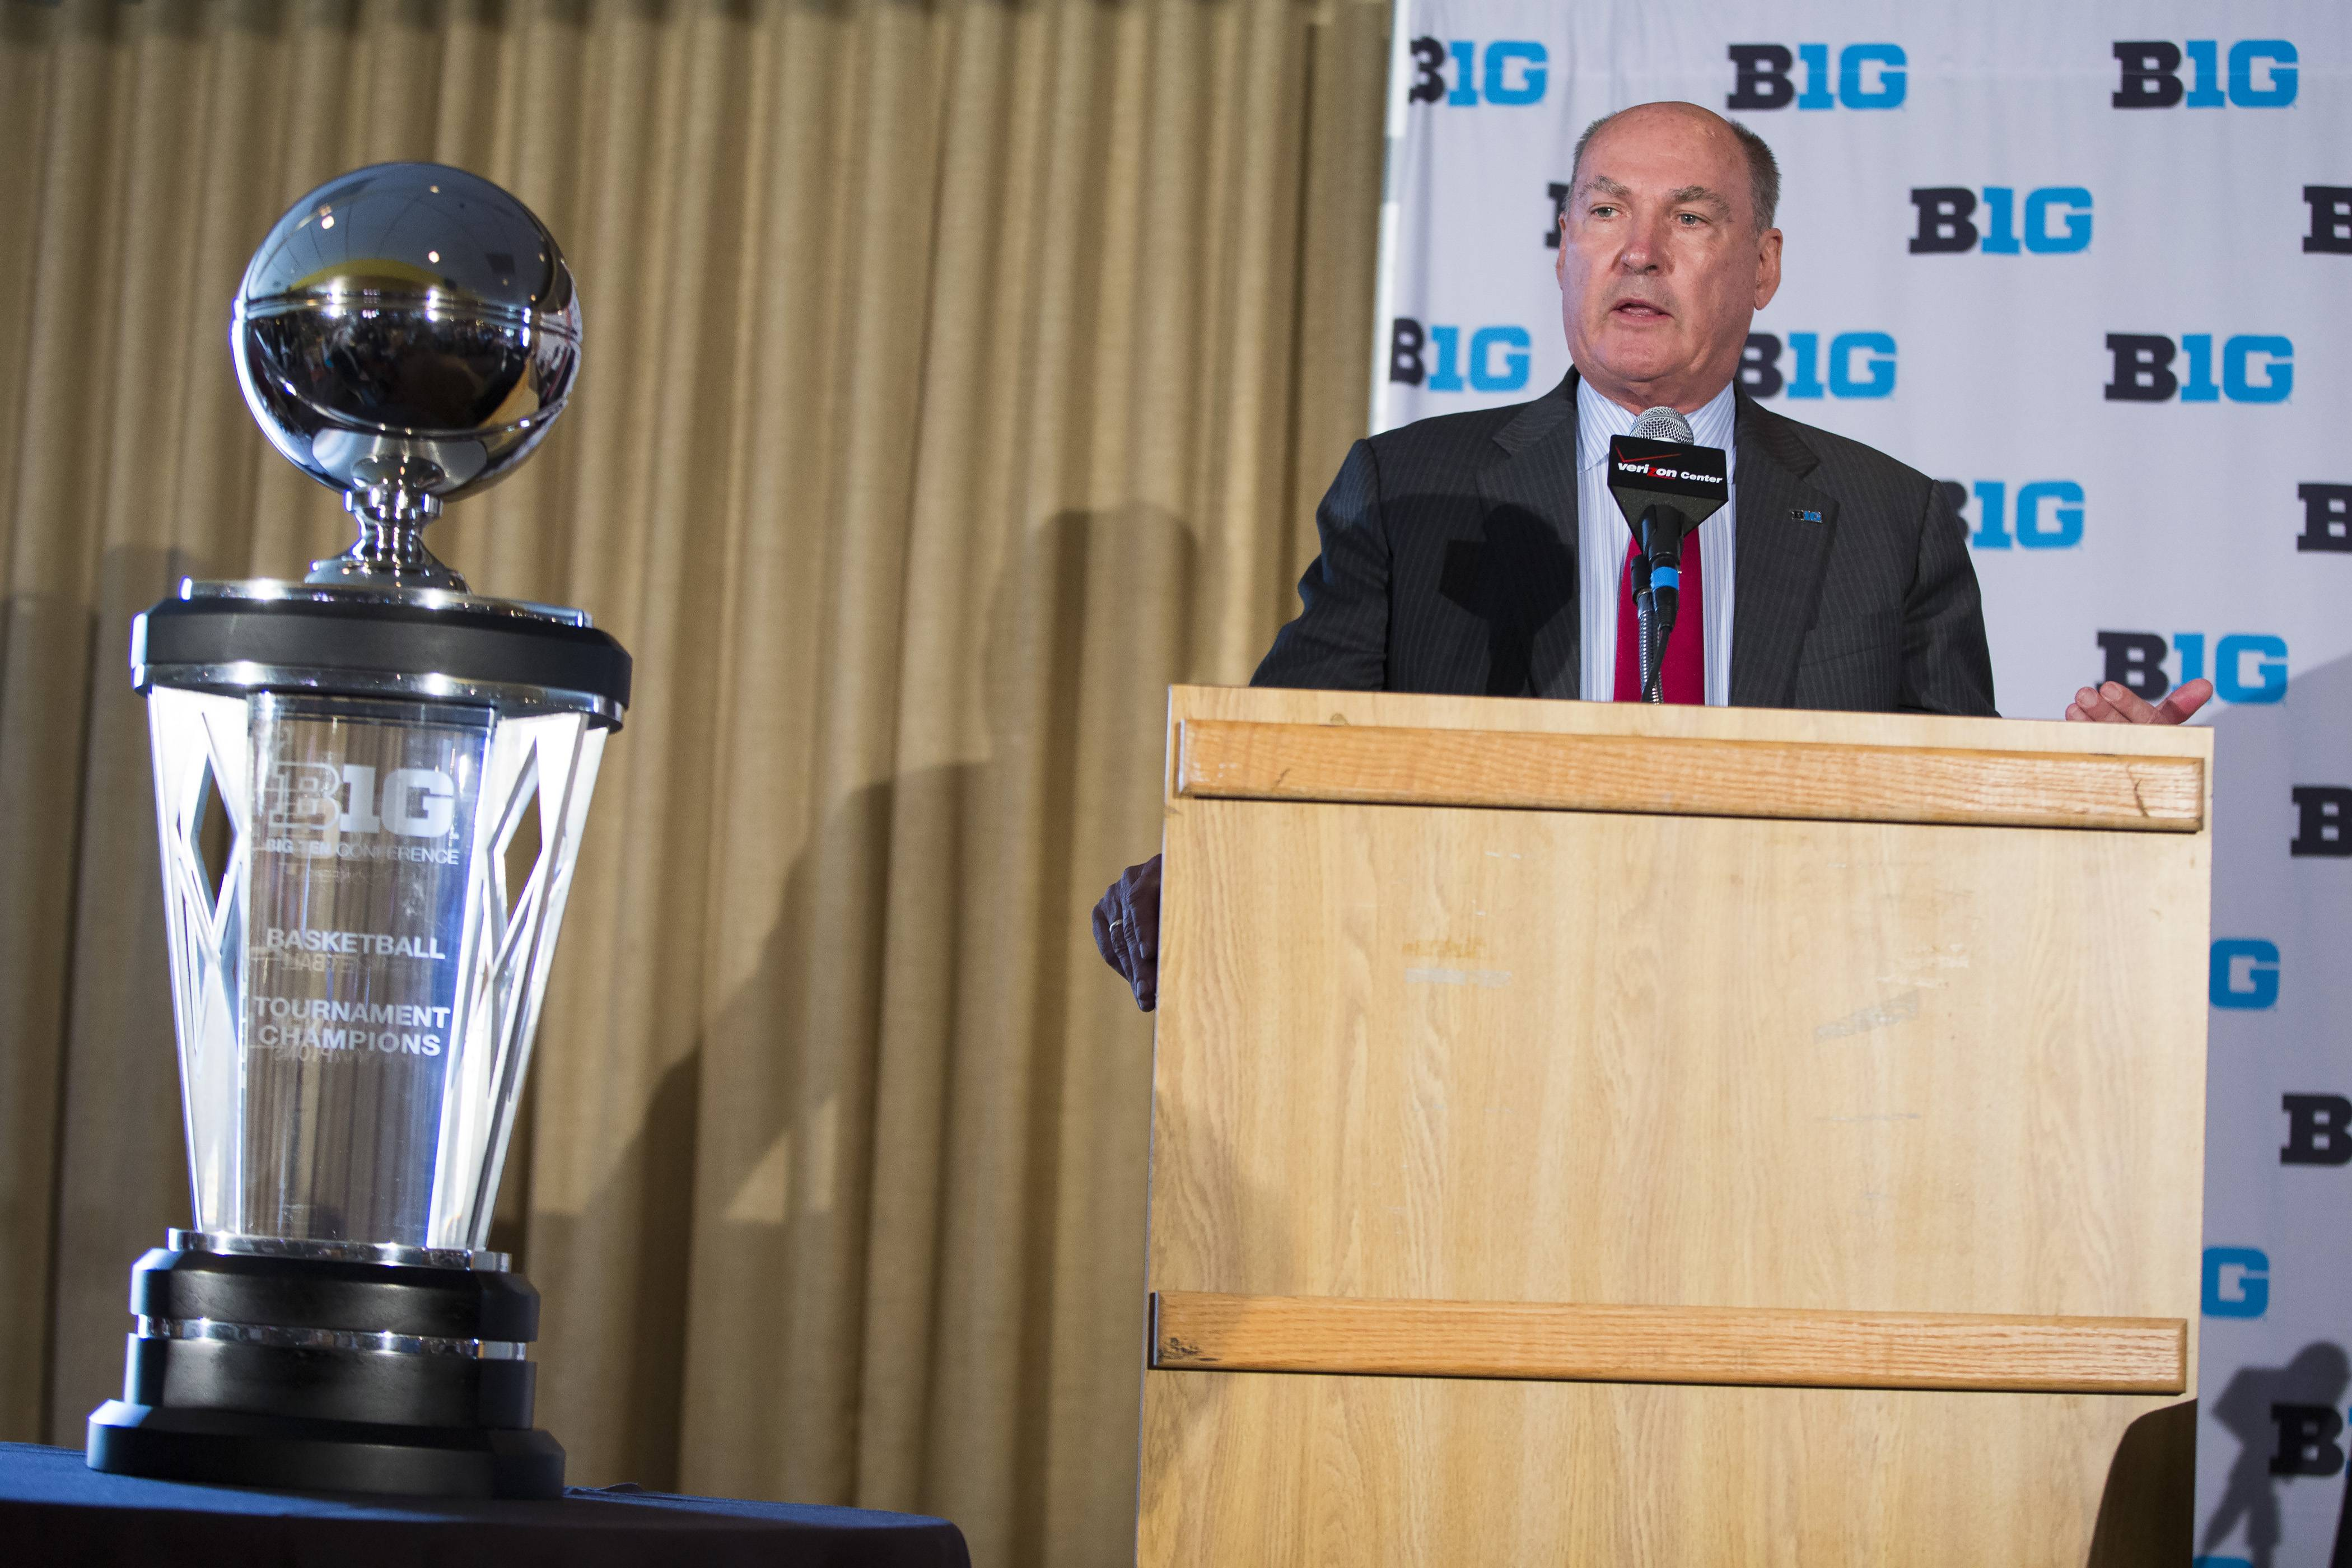 Big Ten commissioner Jim Delany speaks during a news conference at Verizon Center, on Tuesday, May 6, 2014, in Washington. Delany announced that the 2017 Big Ten conference men's basketball tournament will be held in Washington.